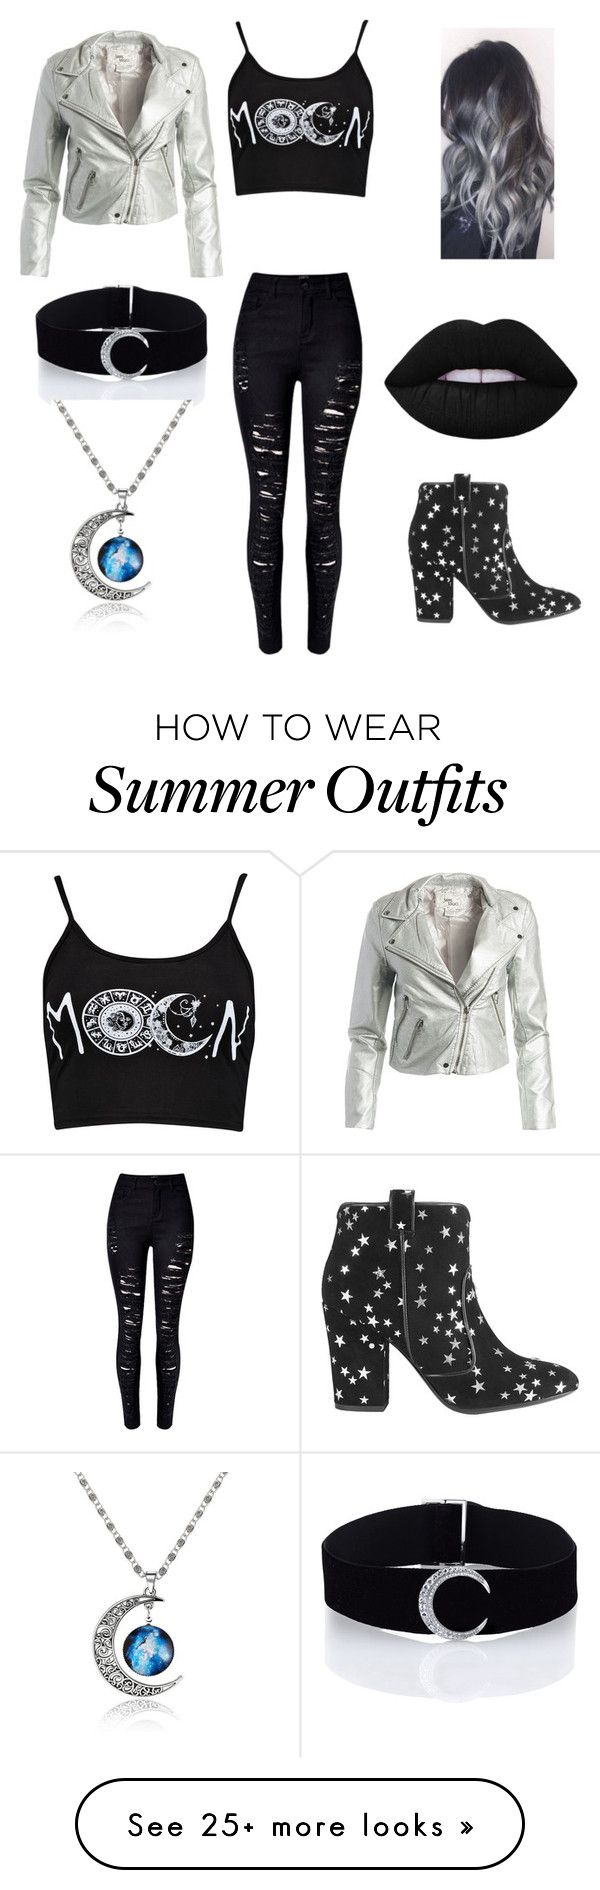 """""""Moon outfit"""" by barbaramark on Polyvore featuring Boohoo, WithChic, S..."""